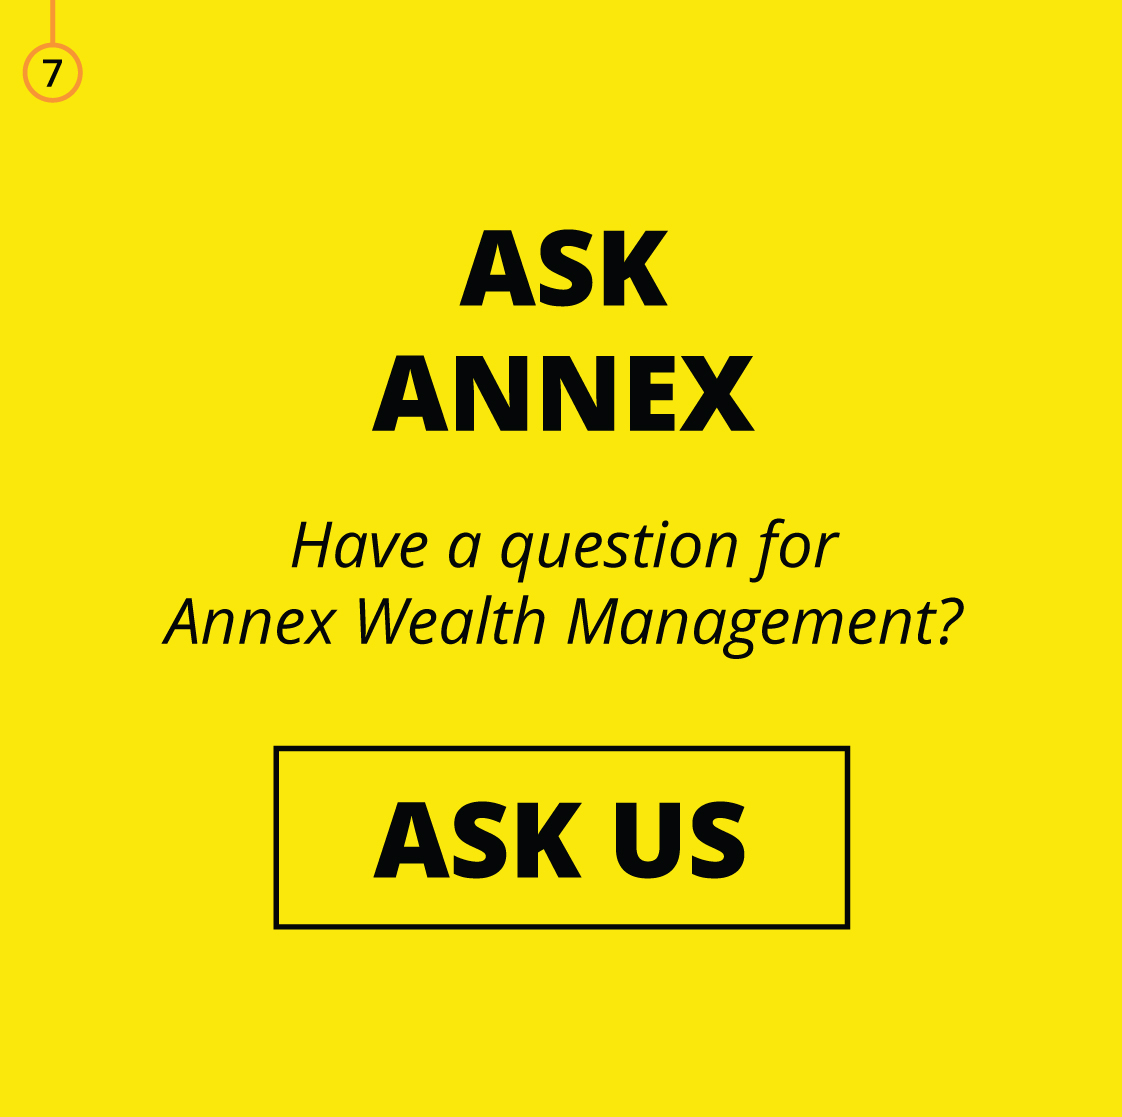 ASK ANNEX: Have A Question For Annex Wealth Management?